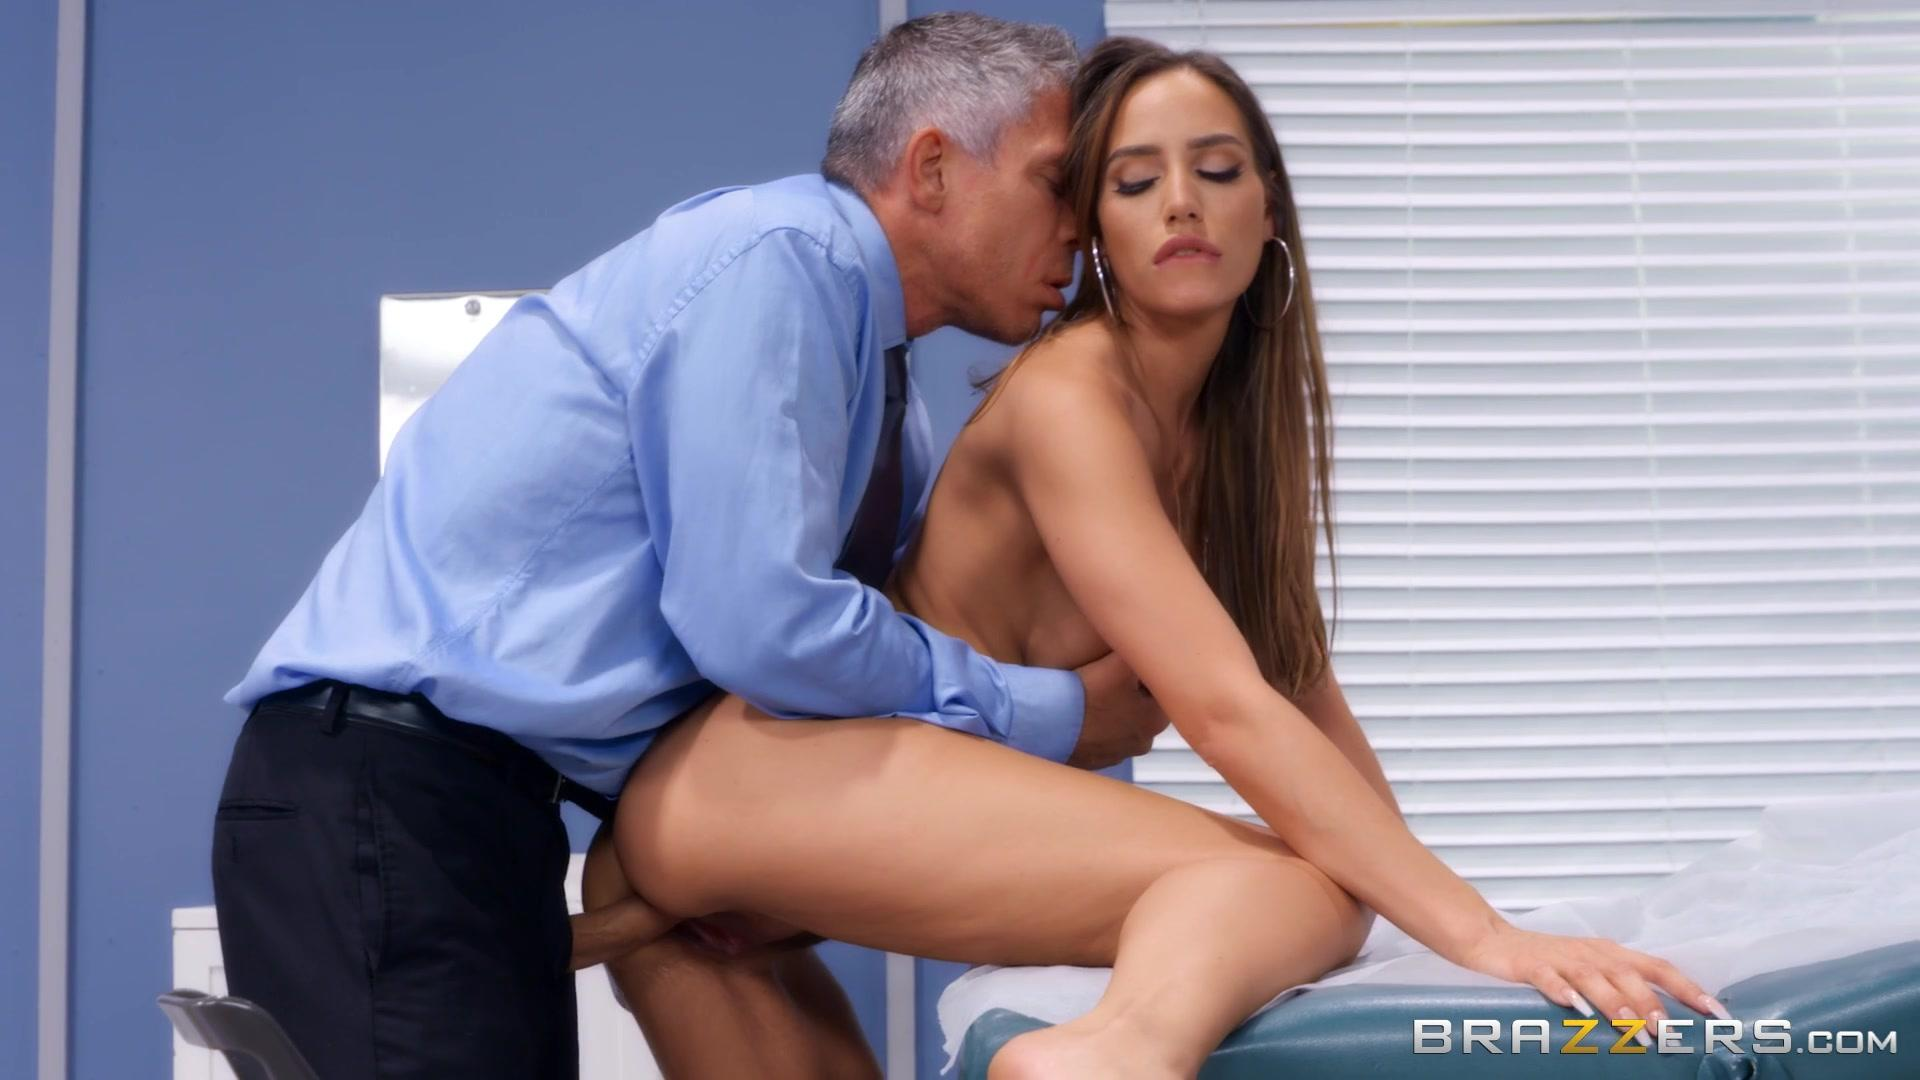 Brazzers Exxtra – Desiree Dulce Clitical Check Up